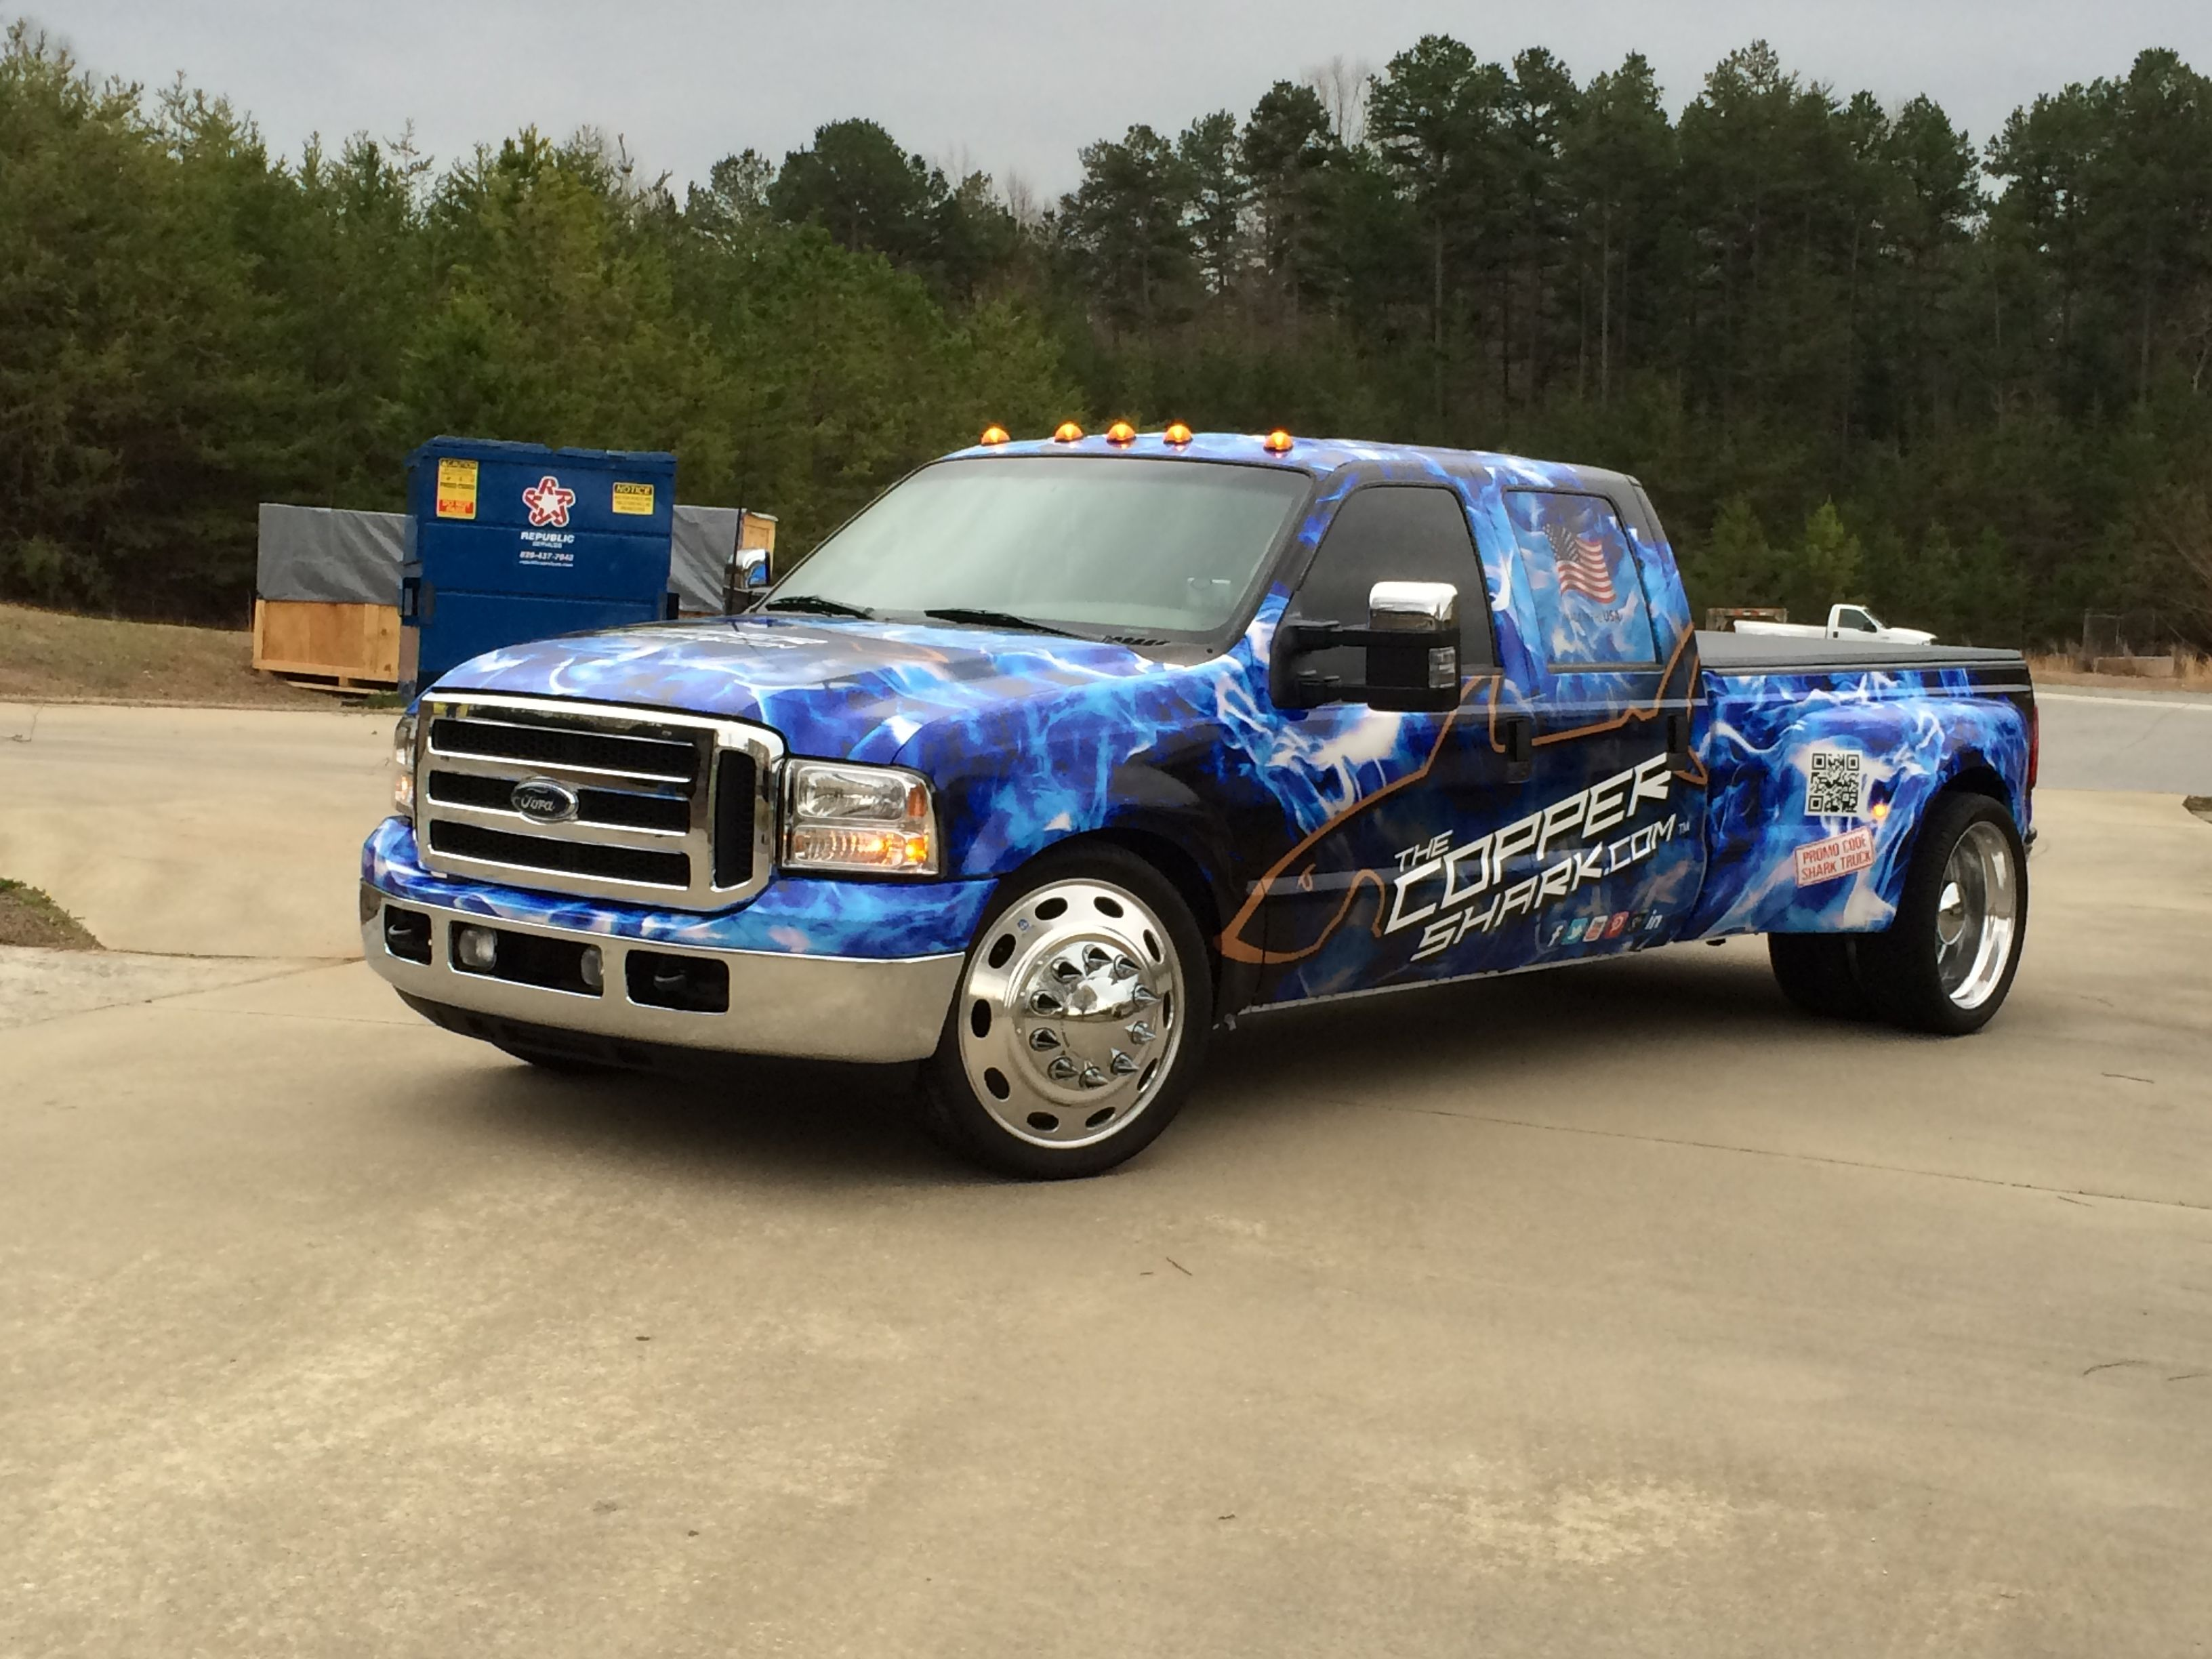 The Shark Truck with its shiny new wrap from The Print Path